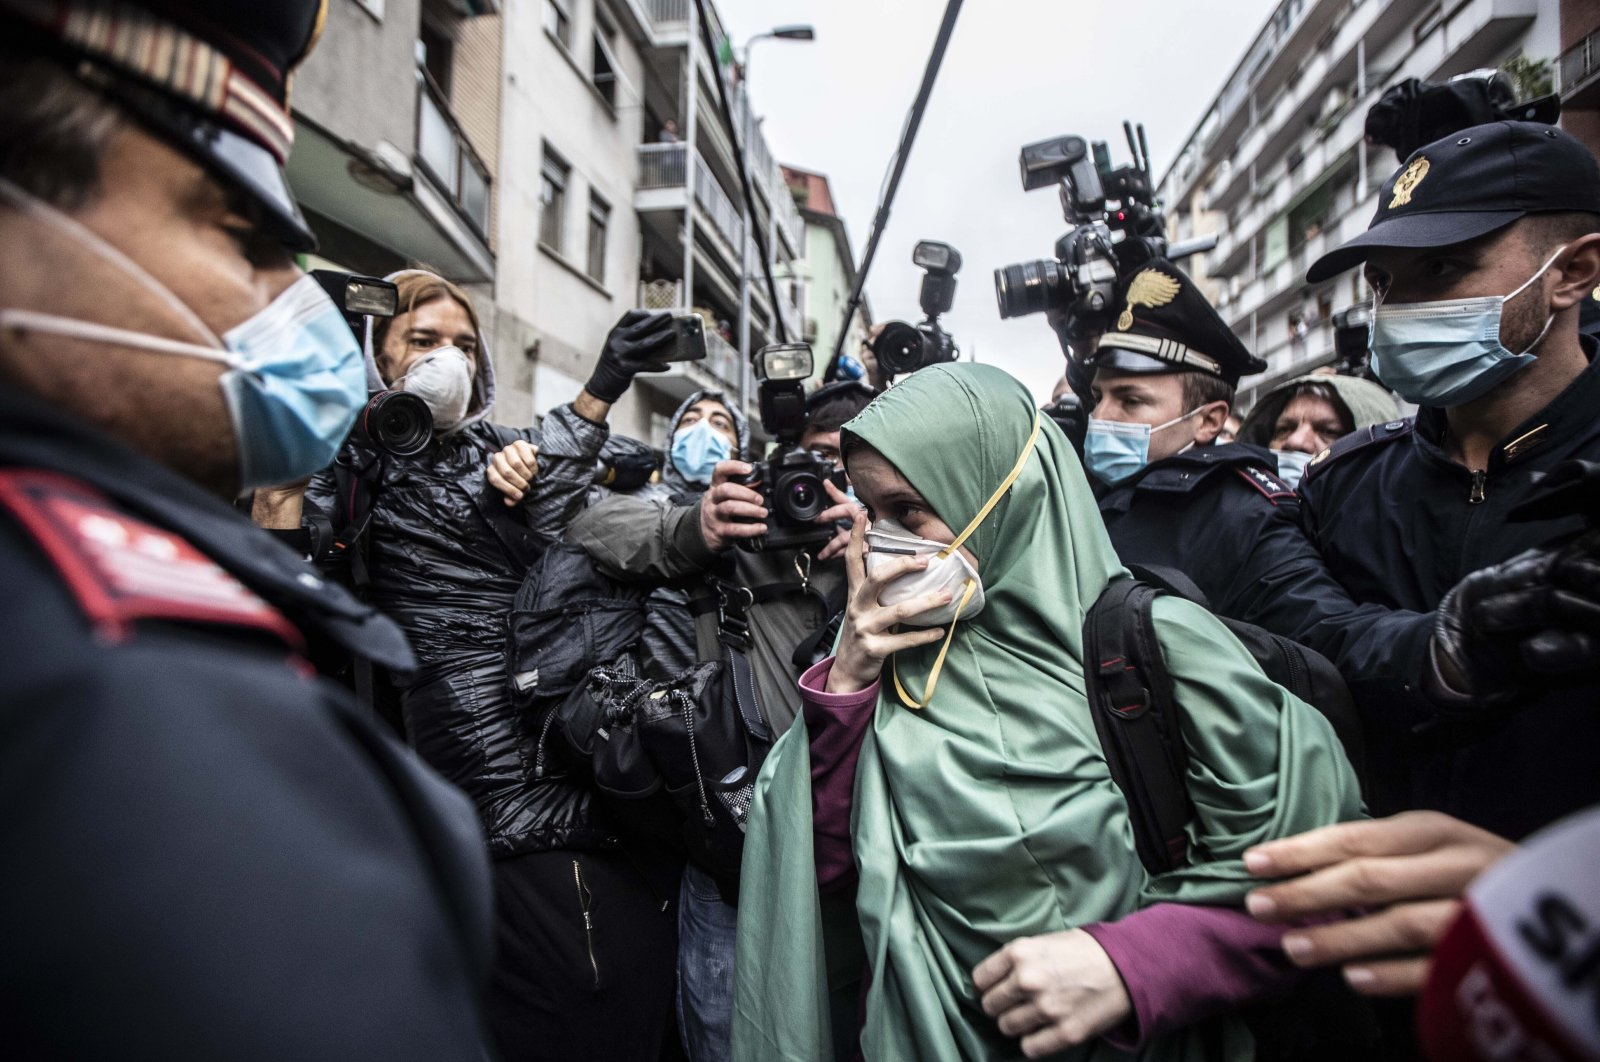 Silvia Romano, escorted by Carabinieri officers, arrives at her home wearing a green garment typical of Somali Muslim women and a surgical mask to guard against COVID-19, in Milan, Italy, May 11, 2020. (AP Photo)